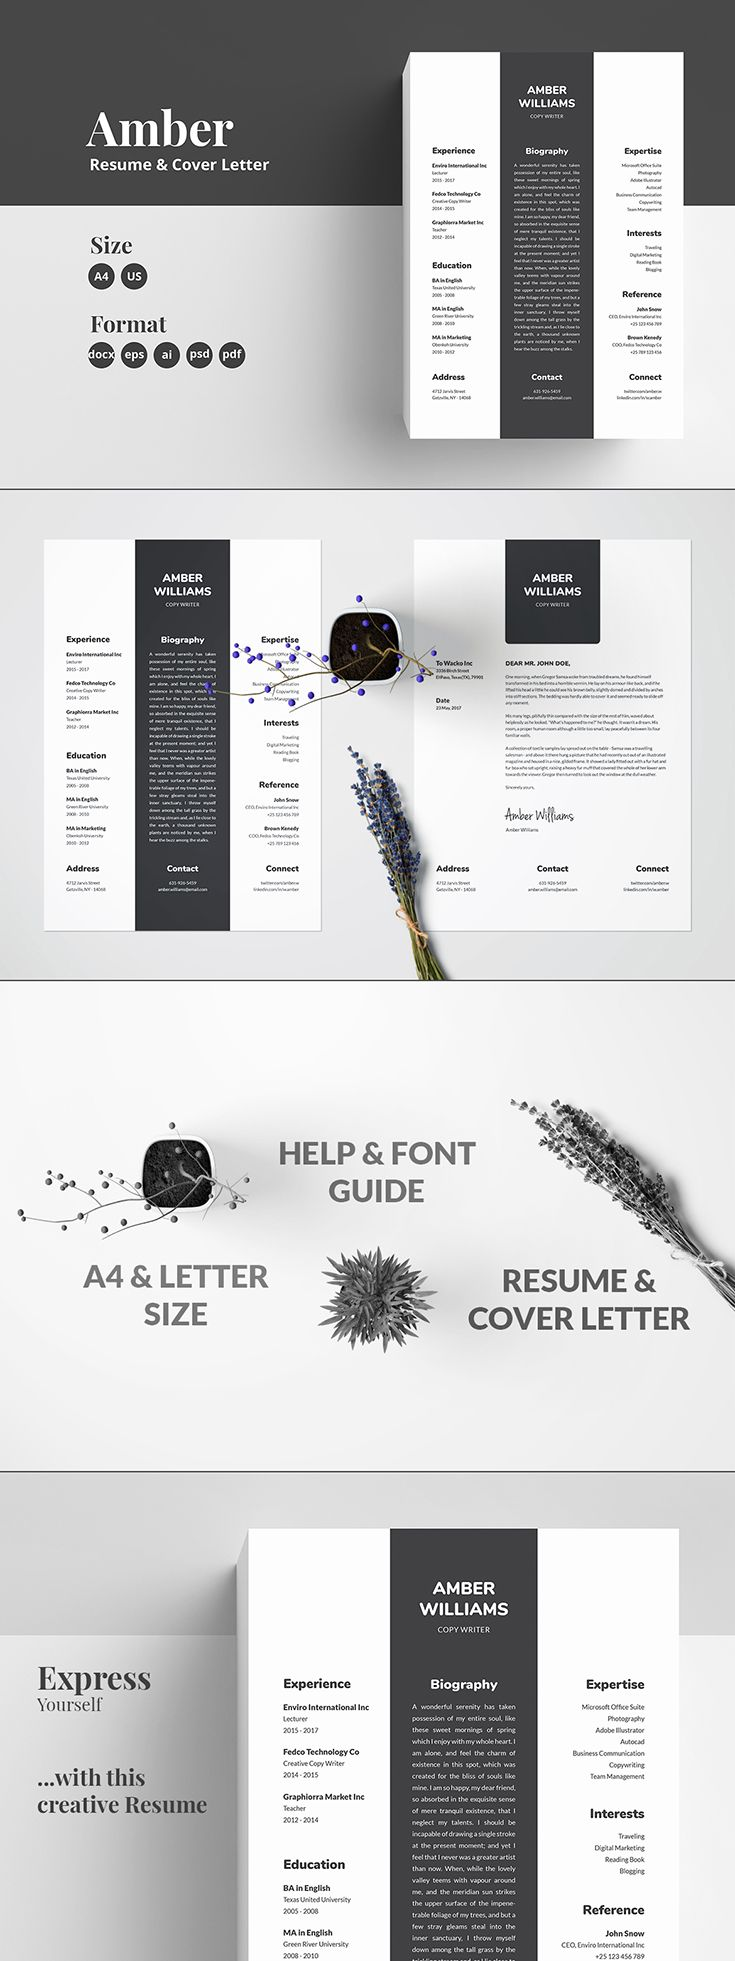 Resume / CV with Cover Letter word docx template for job